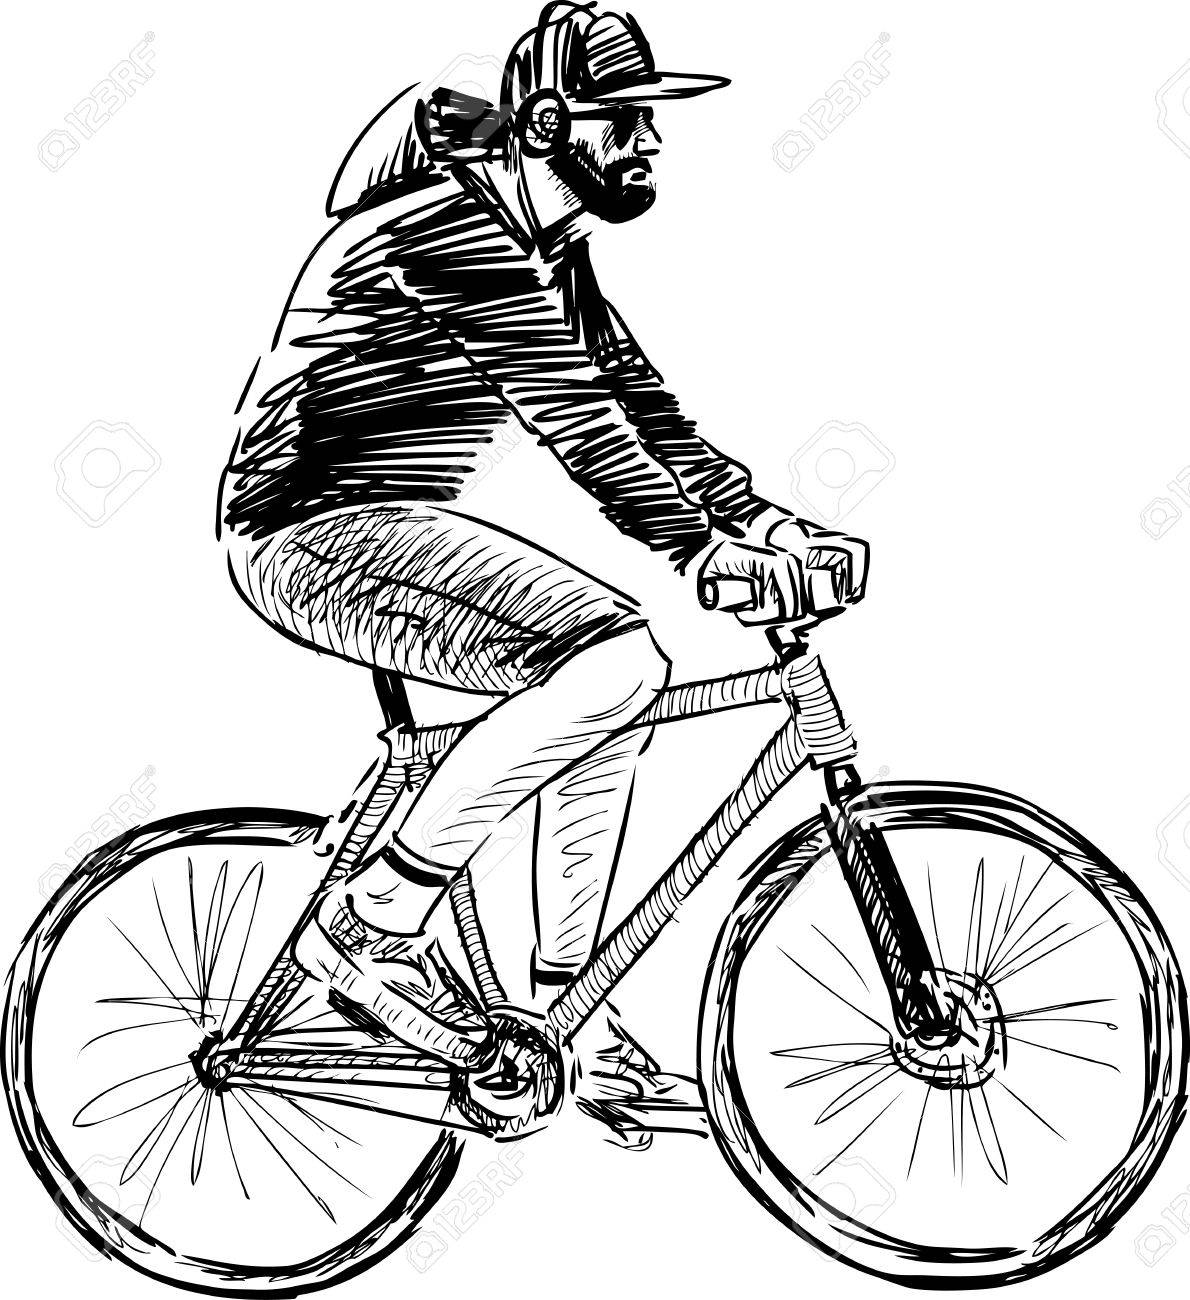 vector sketch of a man riding a bike royalty free cliparts vectors